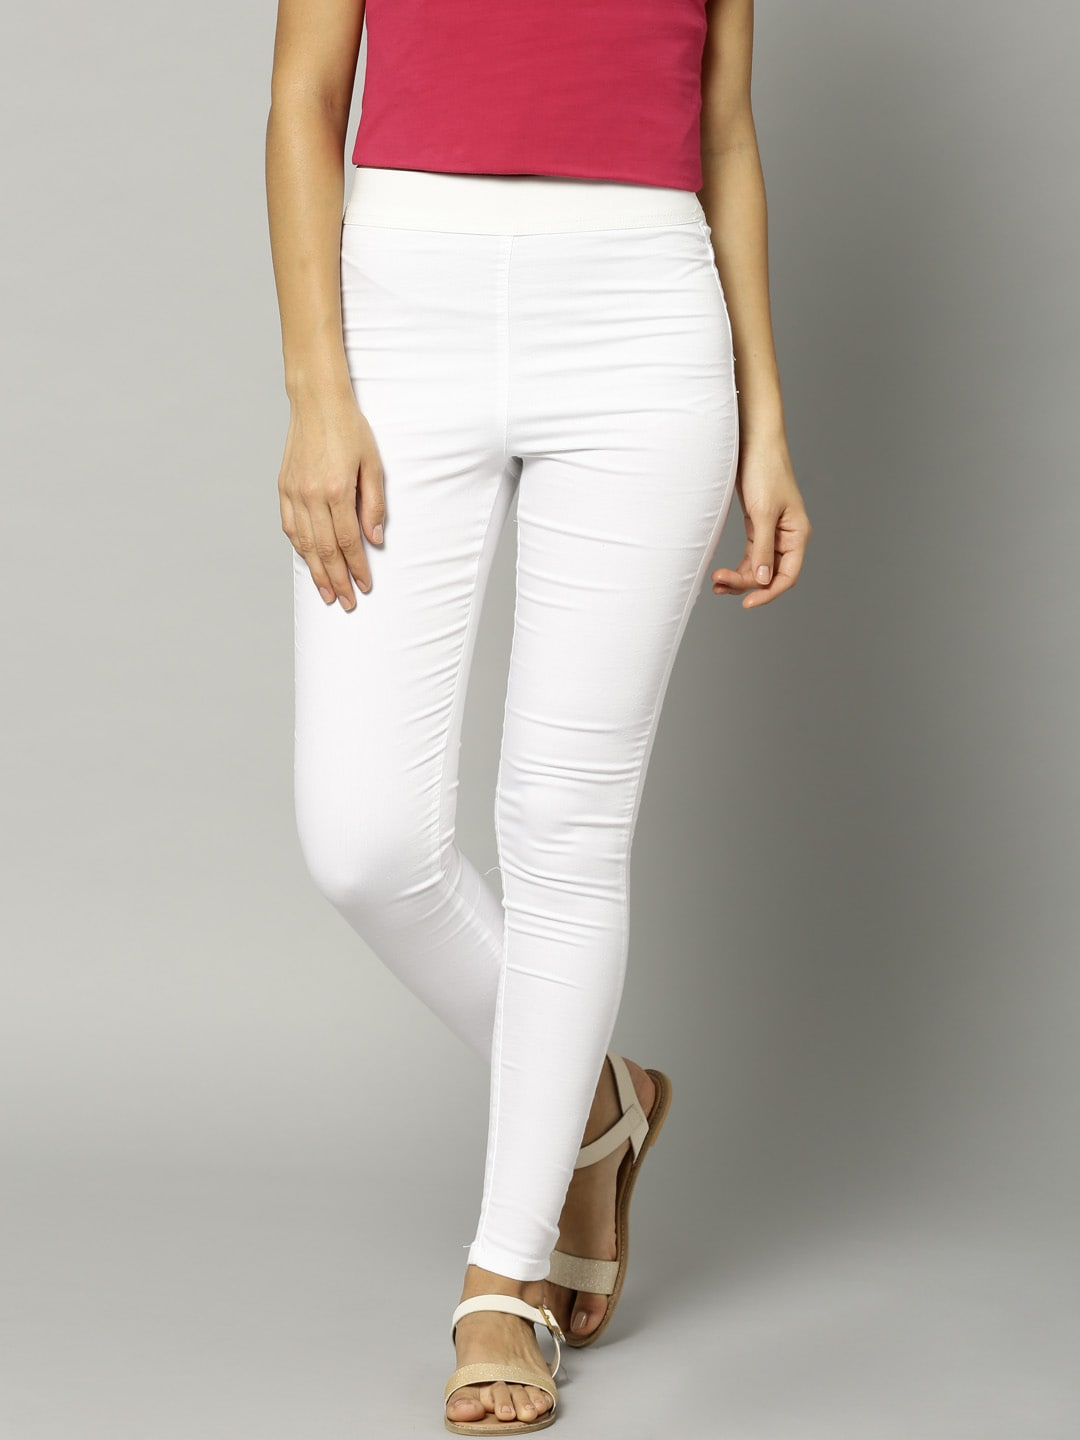 Marks & Spencer White Super Skinny Jeggings